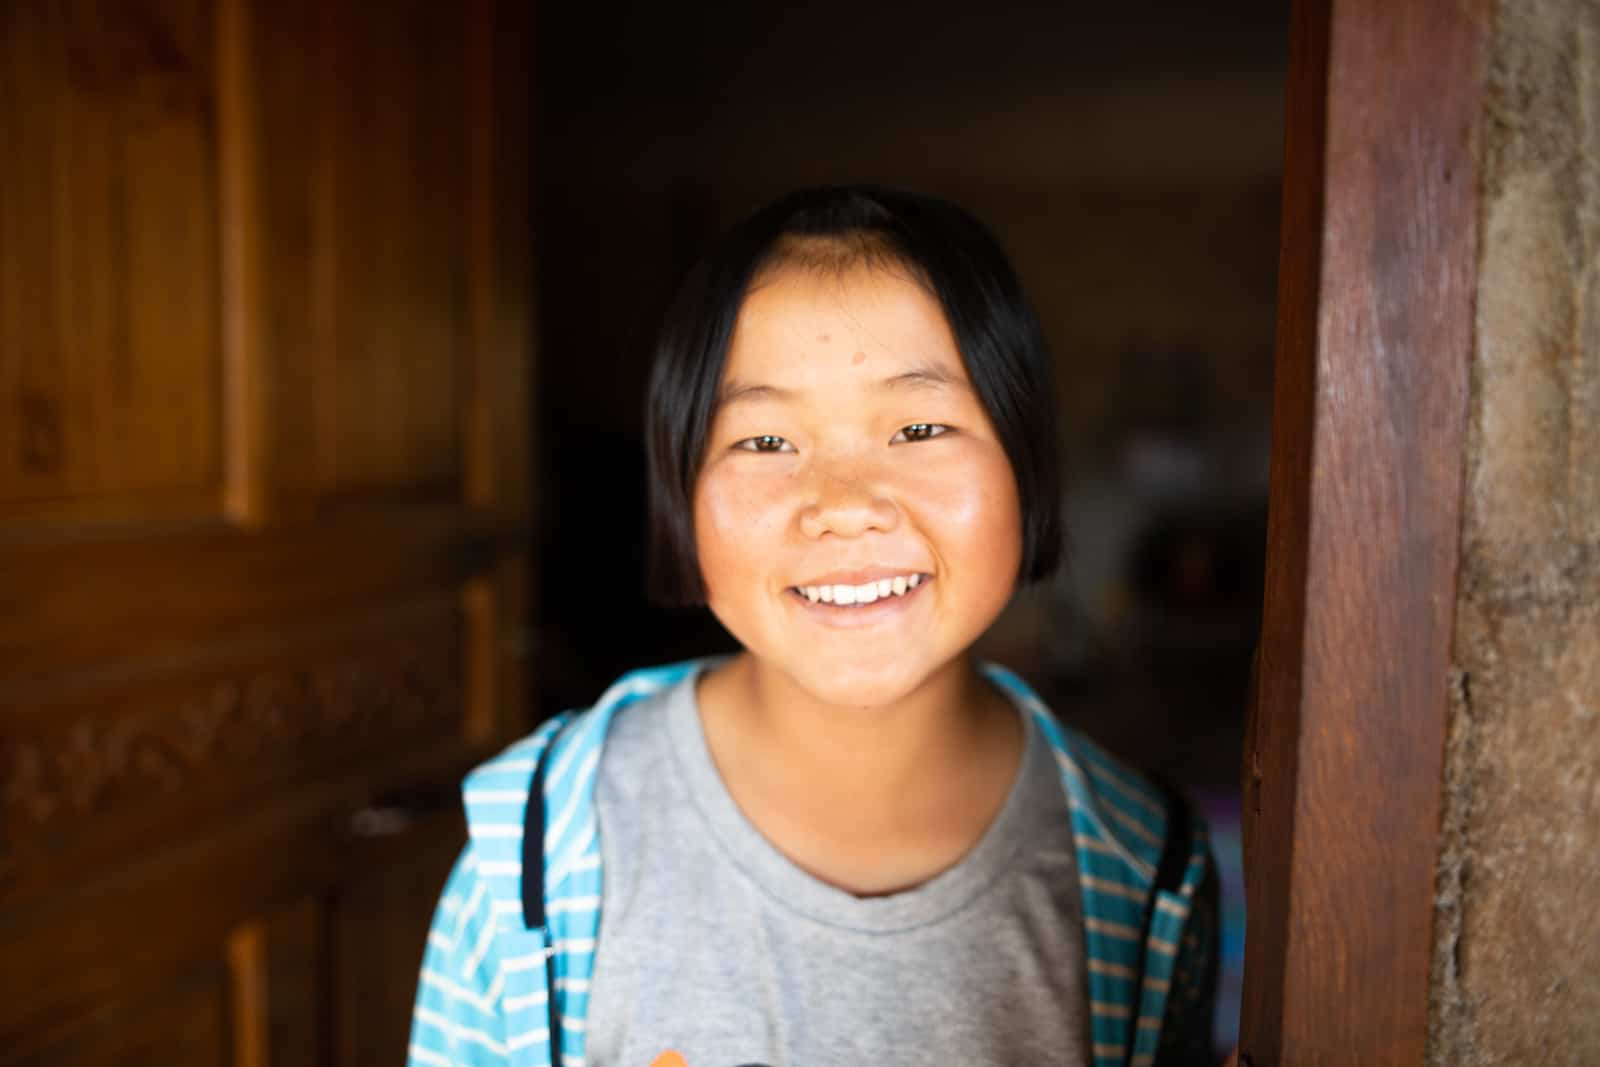 A girl in a grey shirt stands in the doorway of a home, smiling.